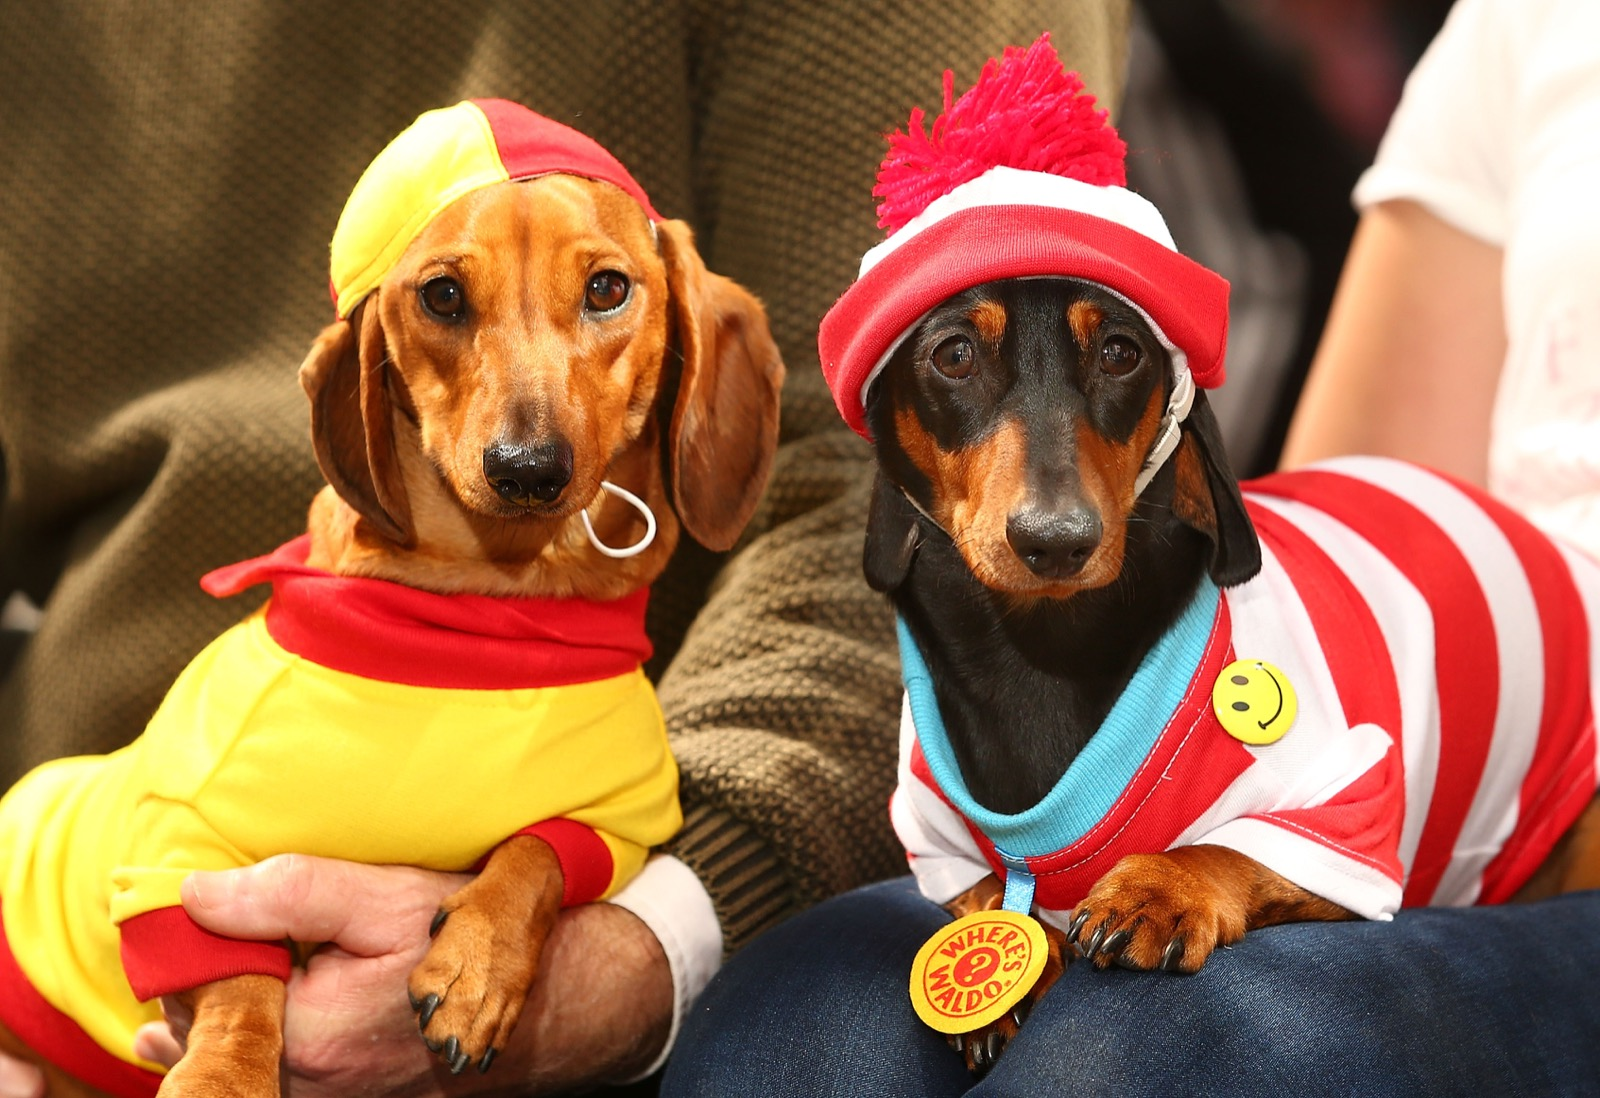 Willy, dressed as a surf livesaver and Mia, dressed as Where's Waldo? compete in the Hophaus Southgate Inaugural Best Dressed Dachshund competition, Saturday, in Melbourne, Australia. Scott Barbour/Getty Images